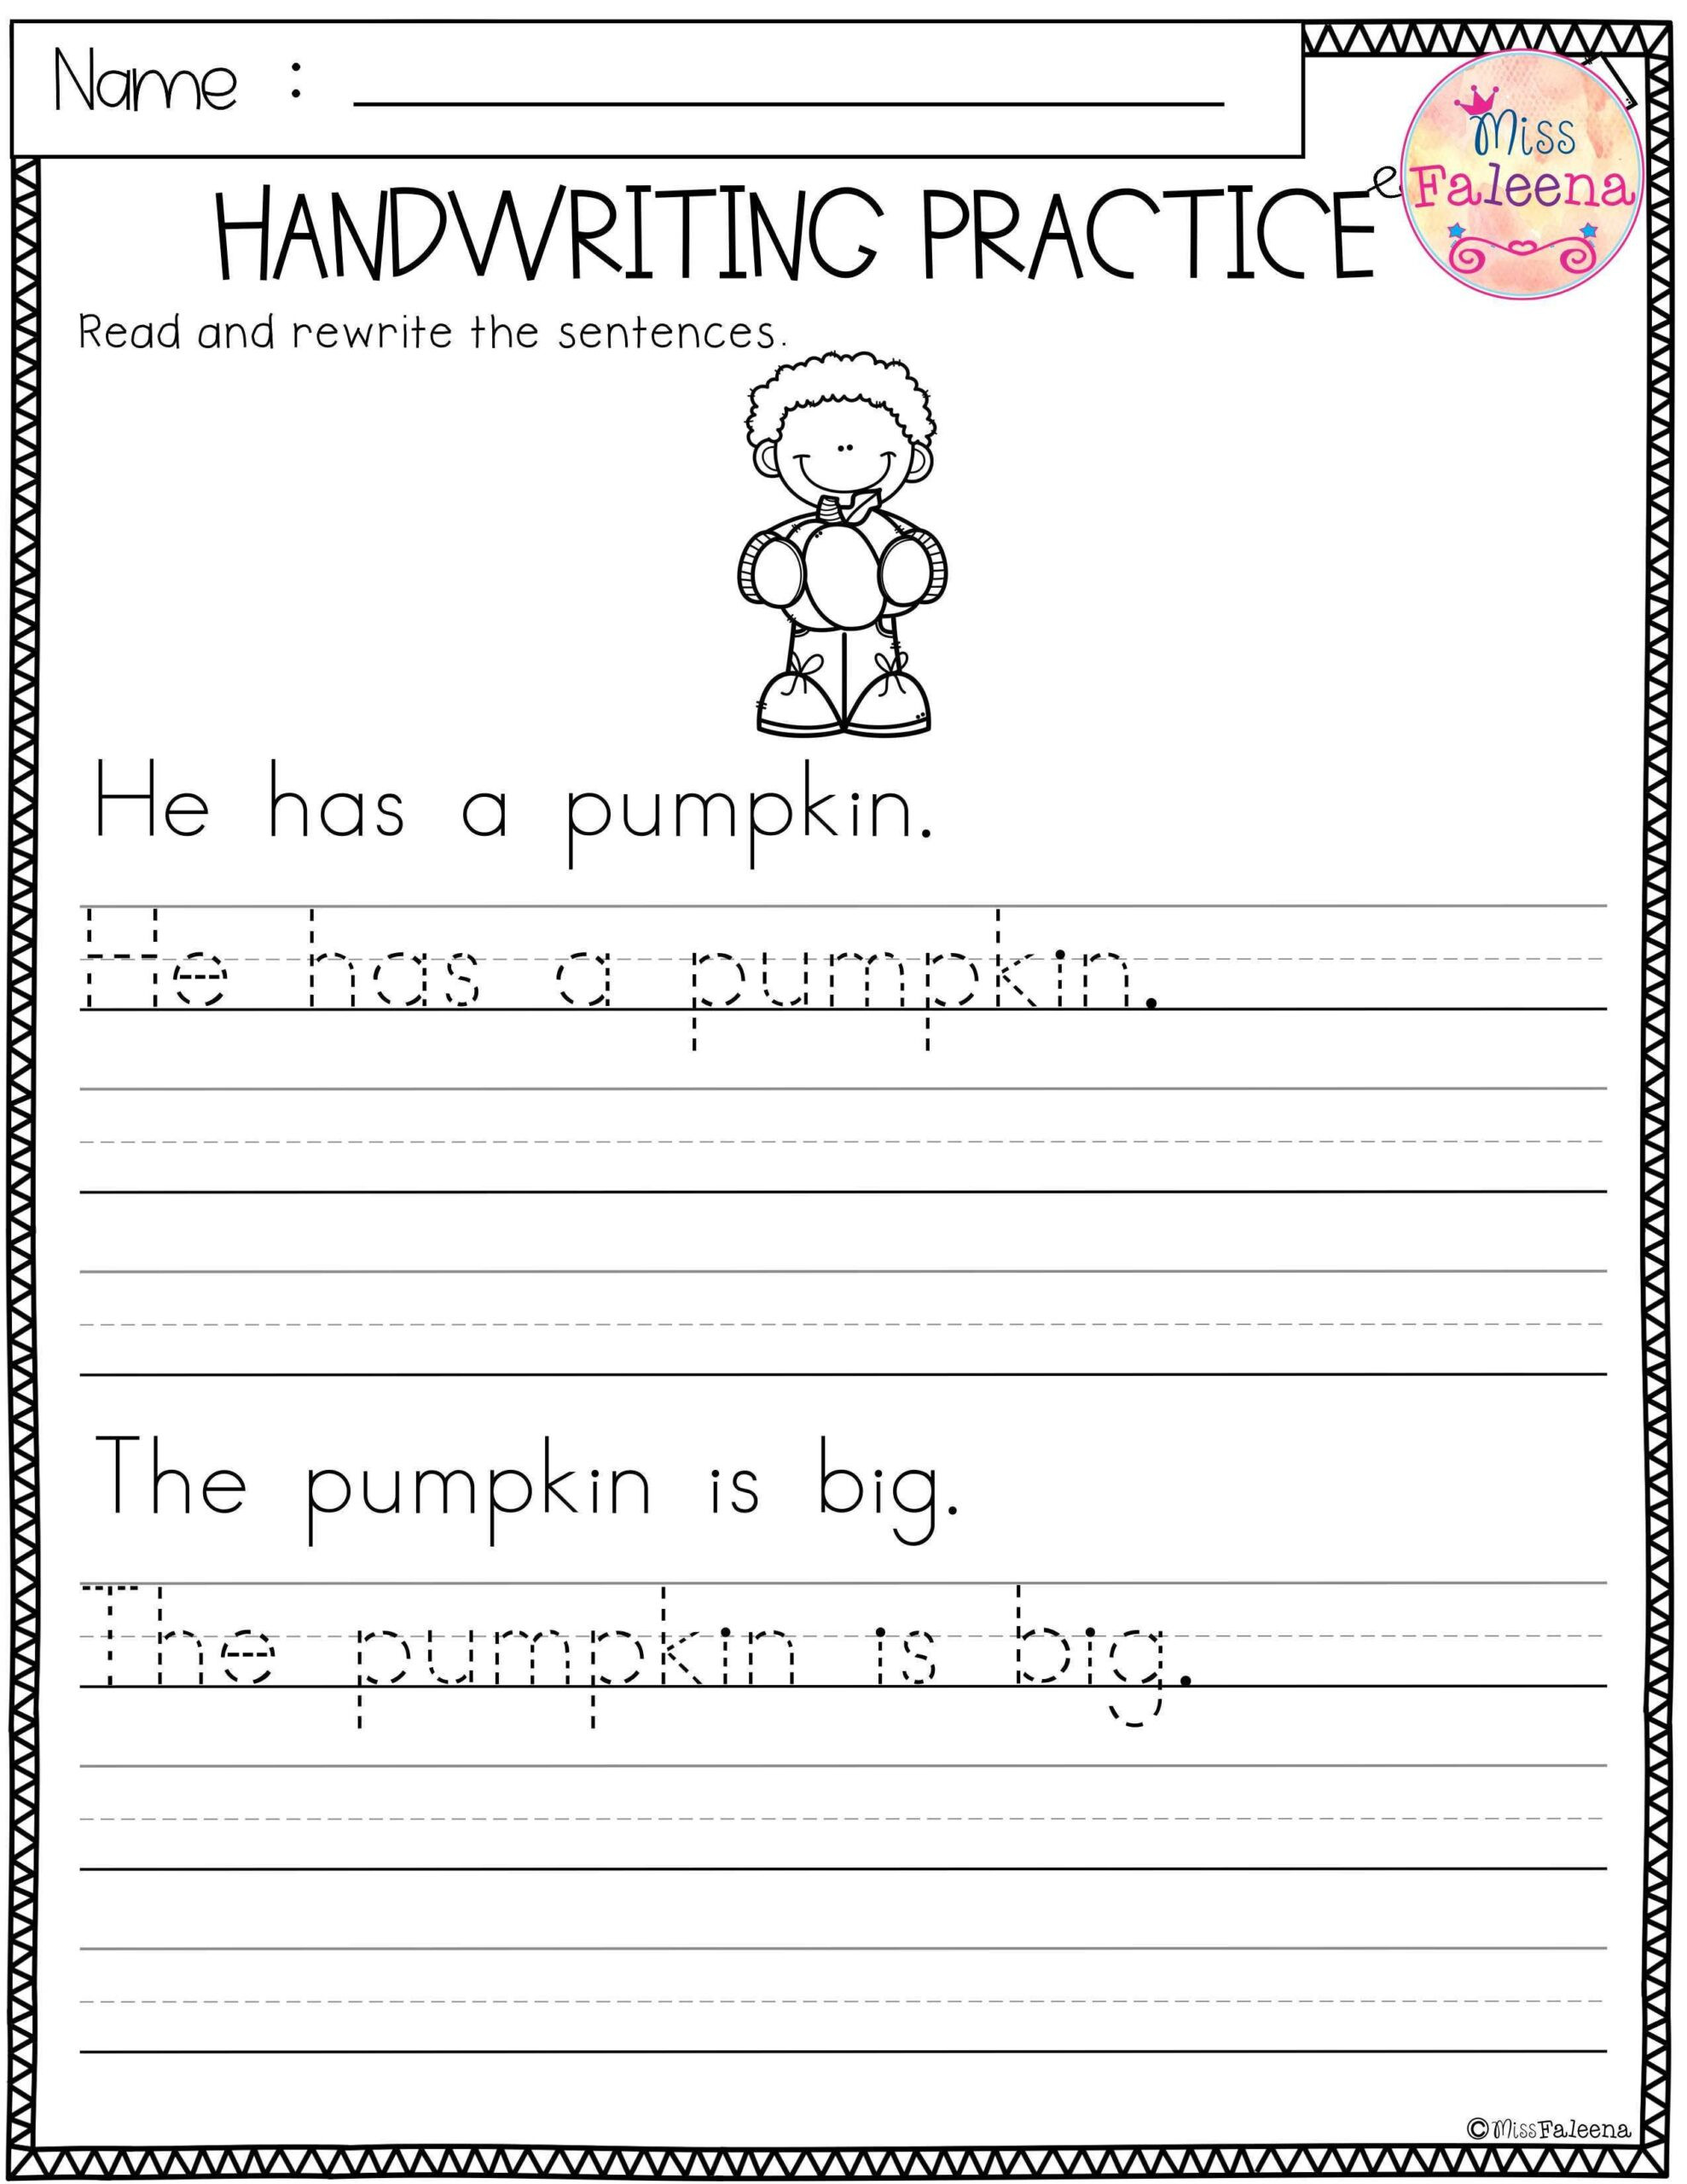 free handwriting practice worksheets sentences phrases for cursive write simple practise sentence scaled